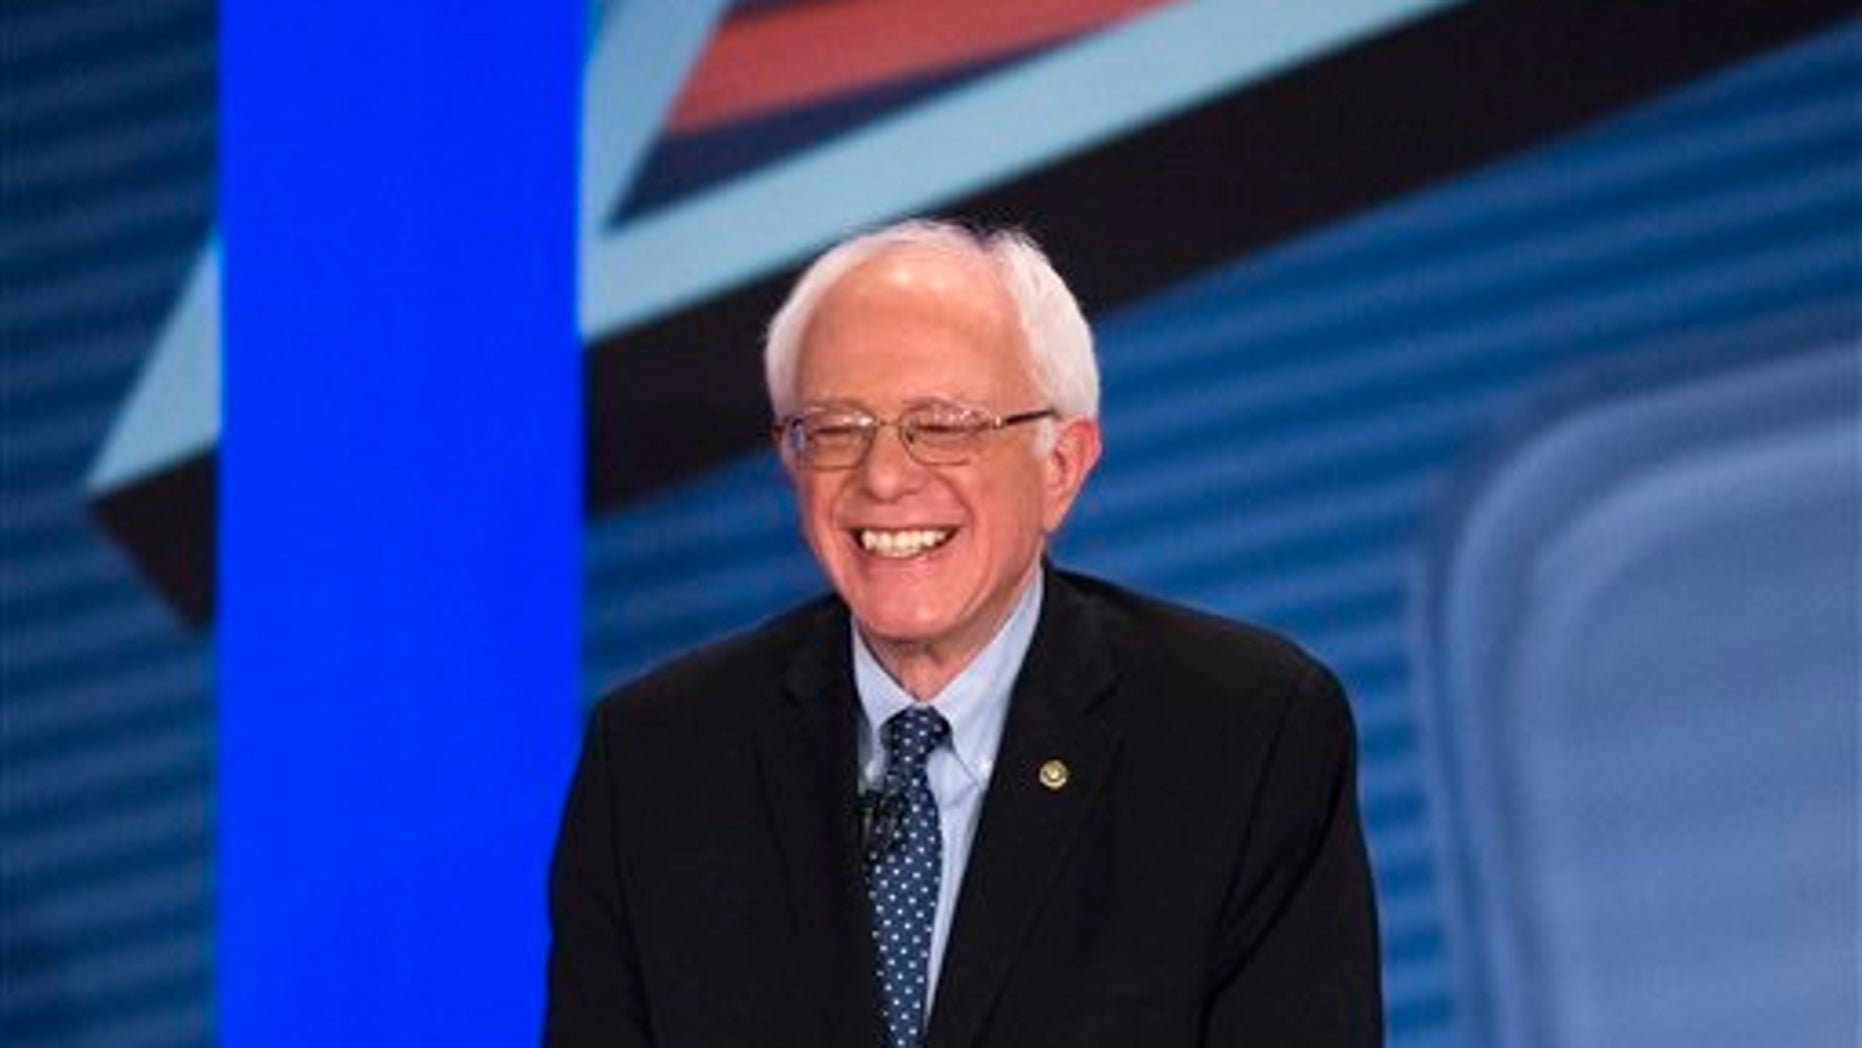 Democratic presidential candidate Sen. Bernie Sanders, I-Vt., smiles as he answers a question from the audience alongside host Anderson Cooper during a democratic primary town hall sponsored by CNN, Wednesday, Feb. 3, 2016, in Derry, N.H. (AP Photo/John Minchillo)